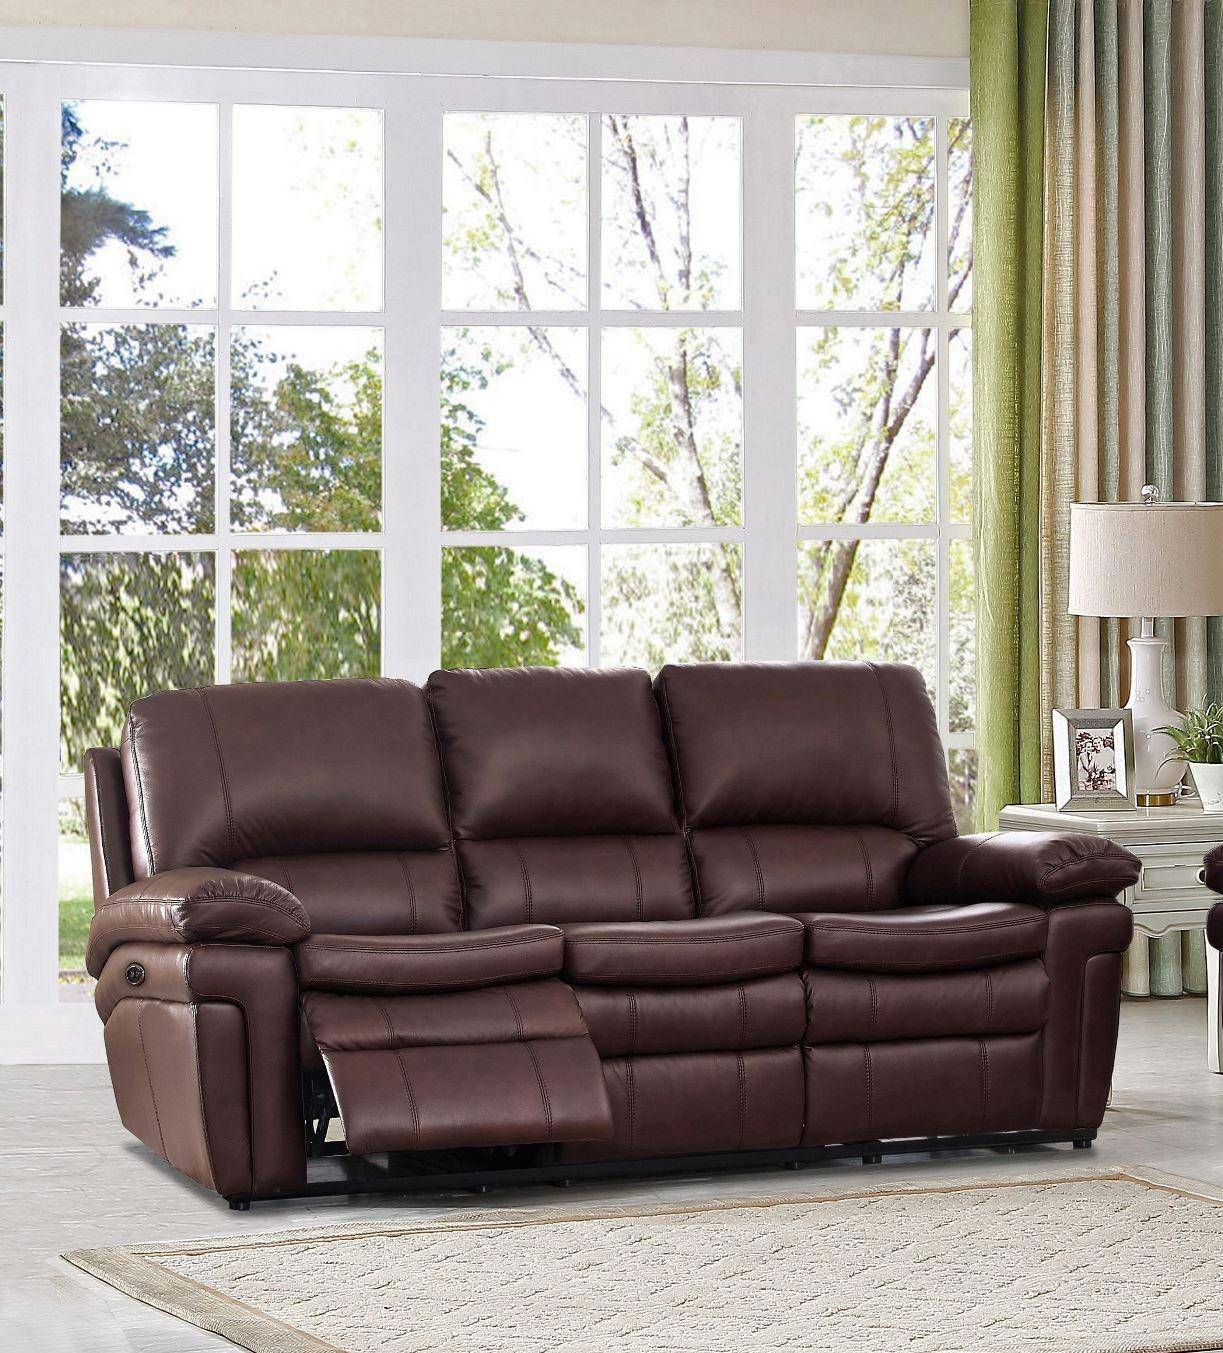 Astonishing Top Grain Leather Power Reclining Sofa Dark Brown Burrard Hydeline Bralicious Painted Fabric Chair Ideas Braliciousco